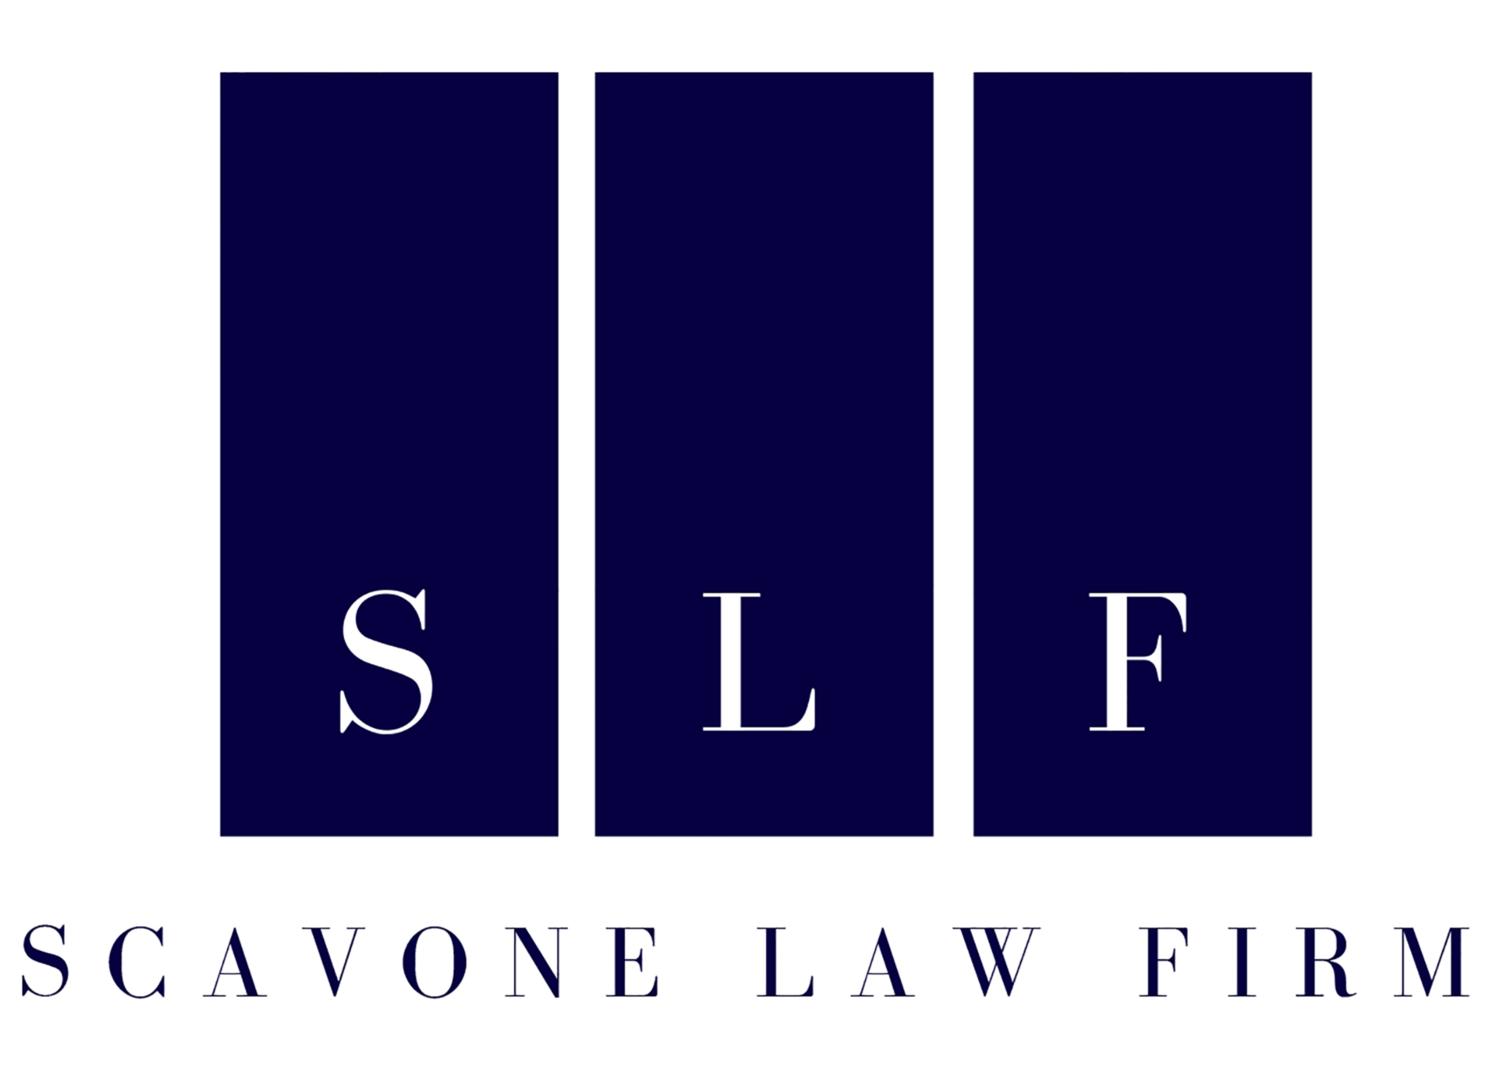 Scavone Law Firm